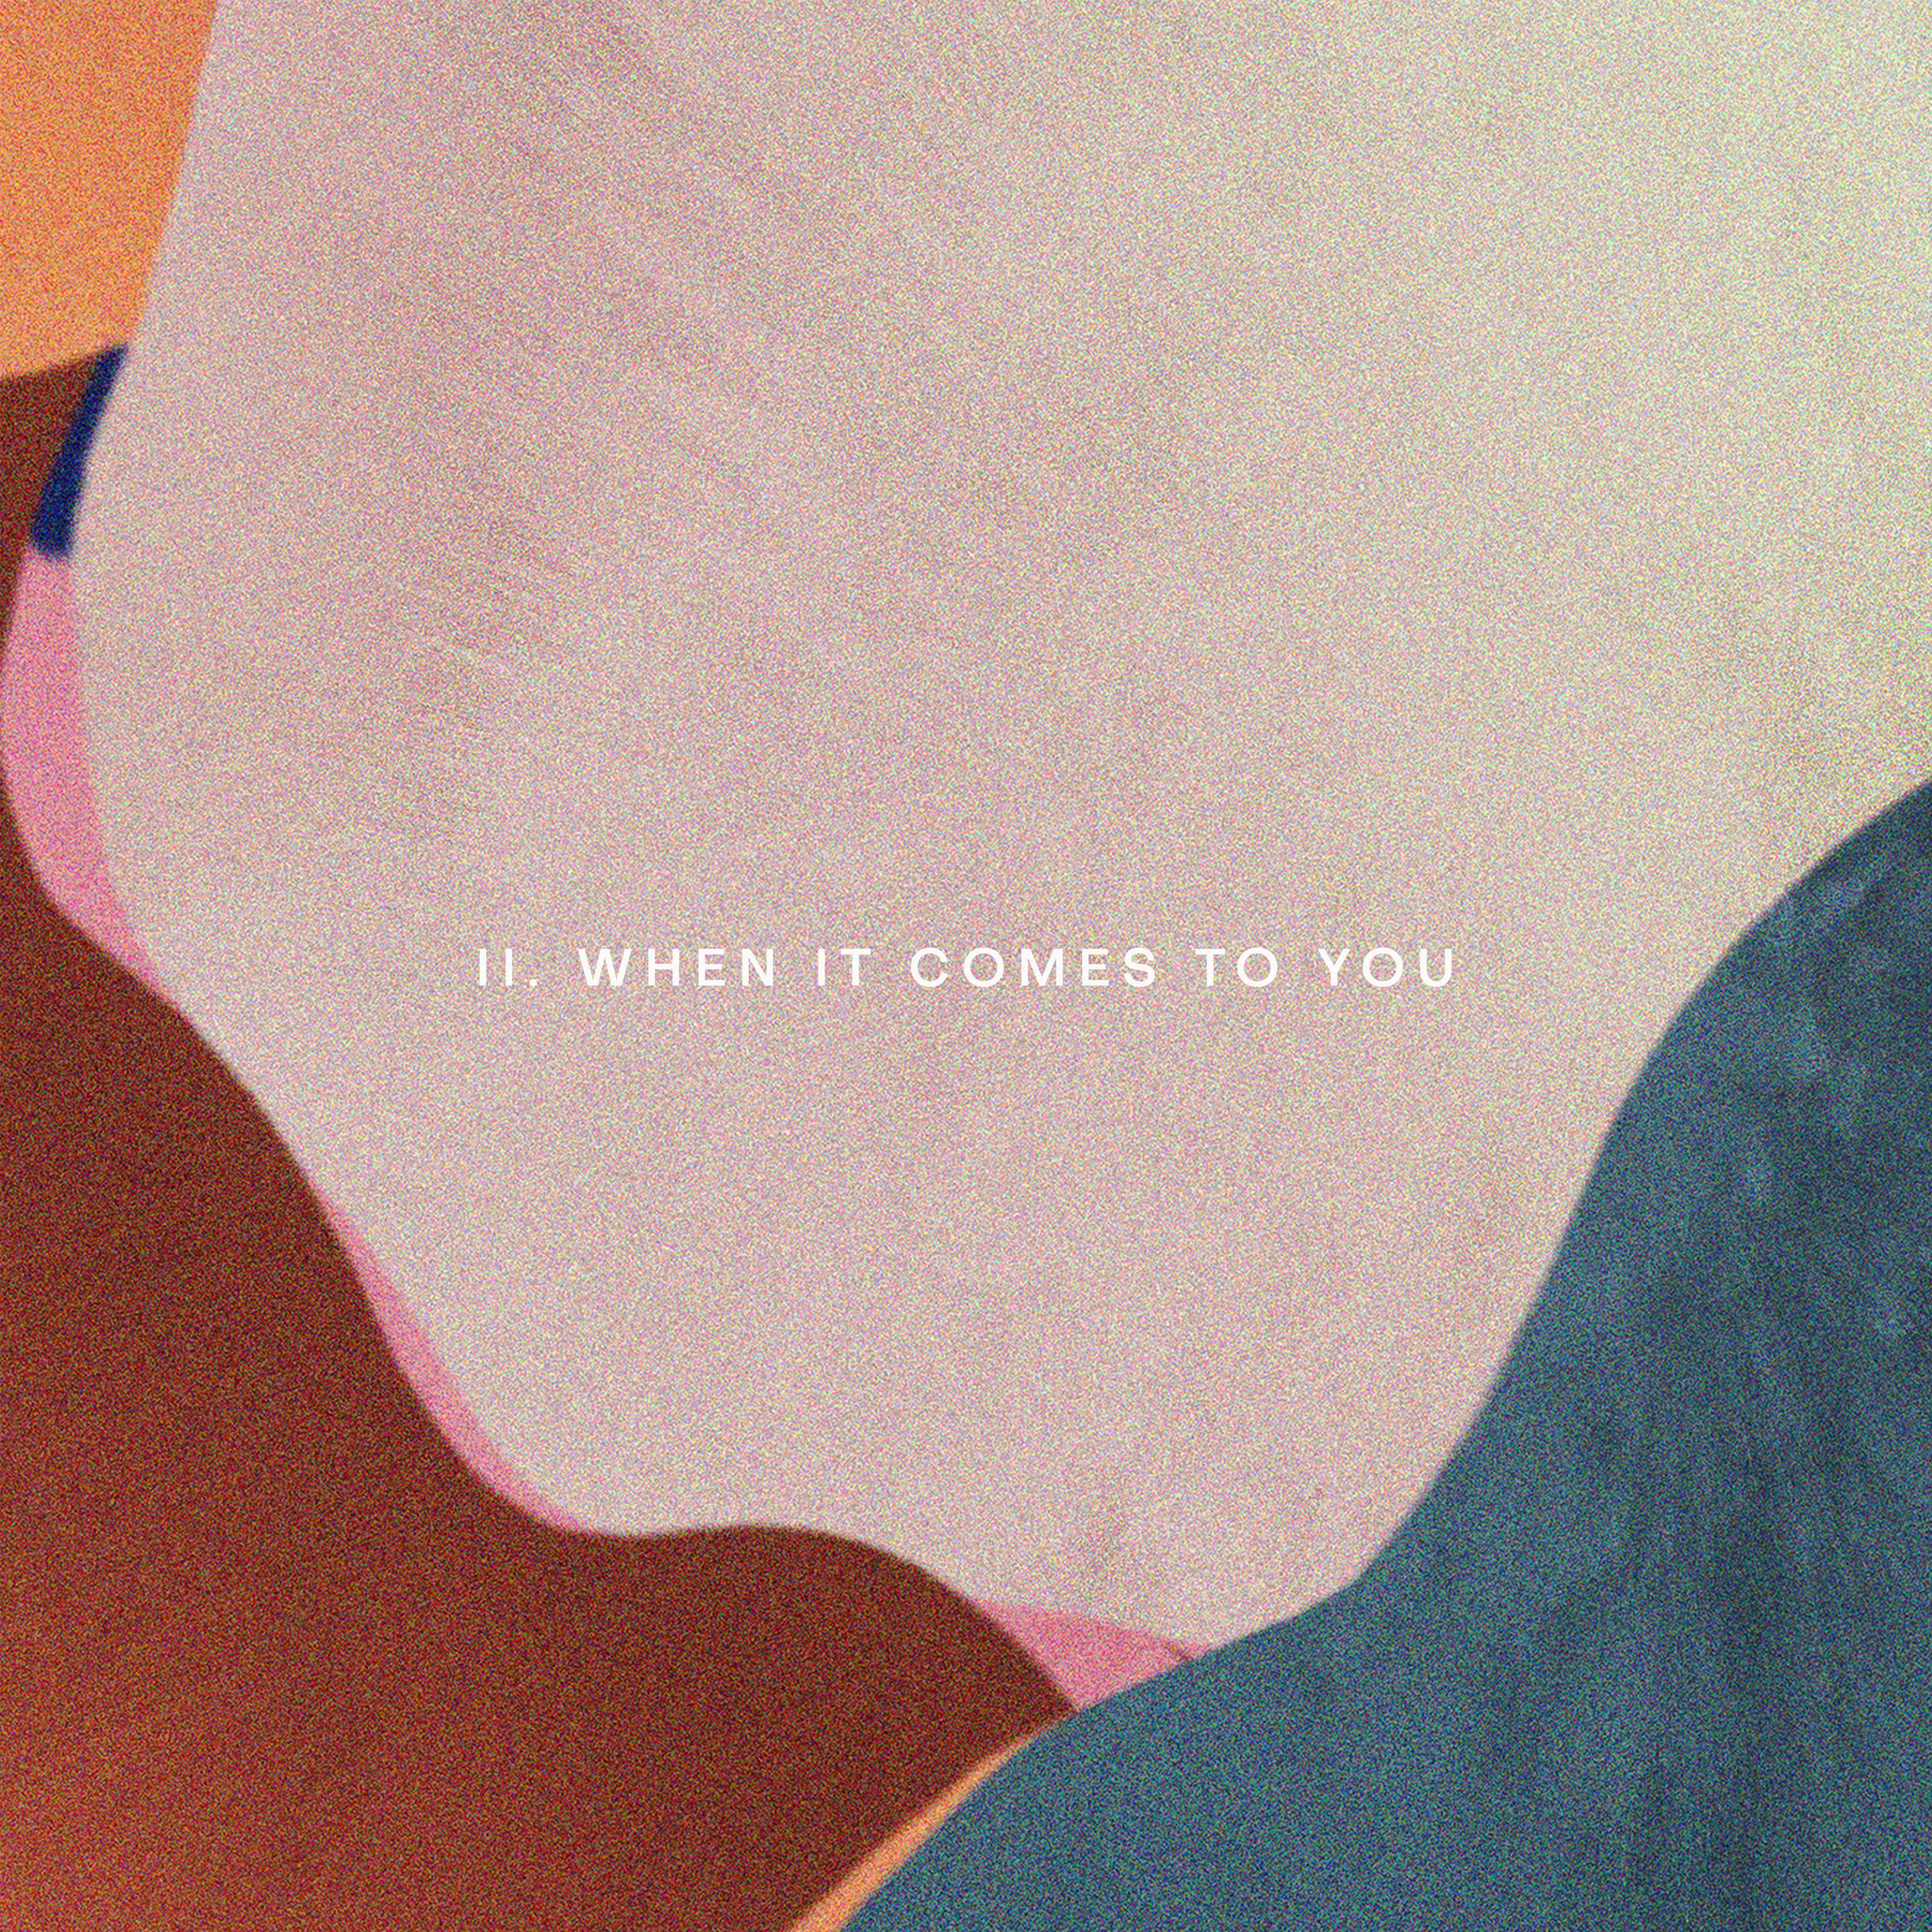 When It Comes To You Cover.jpg